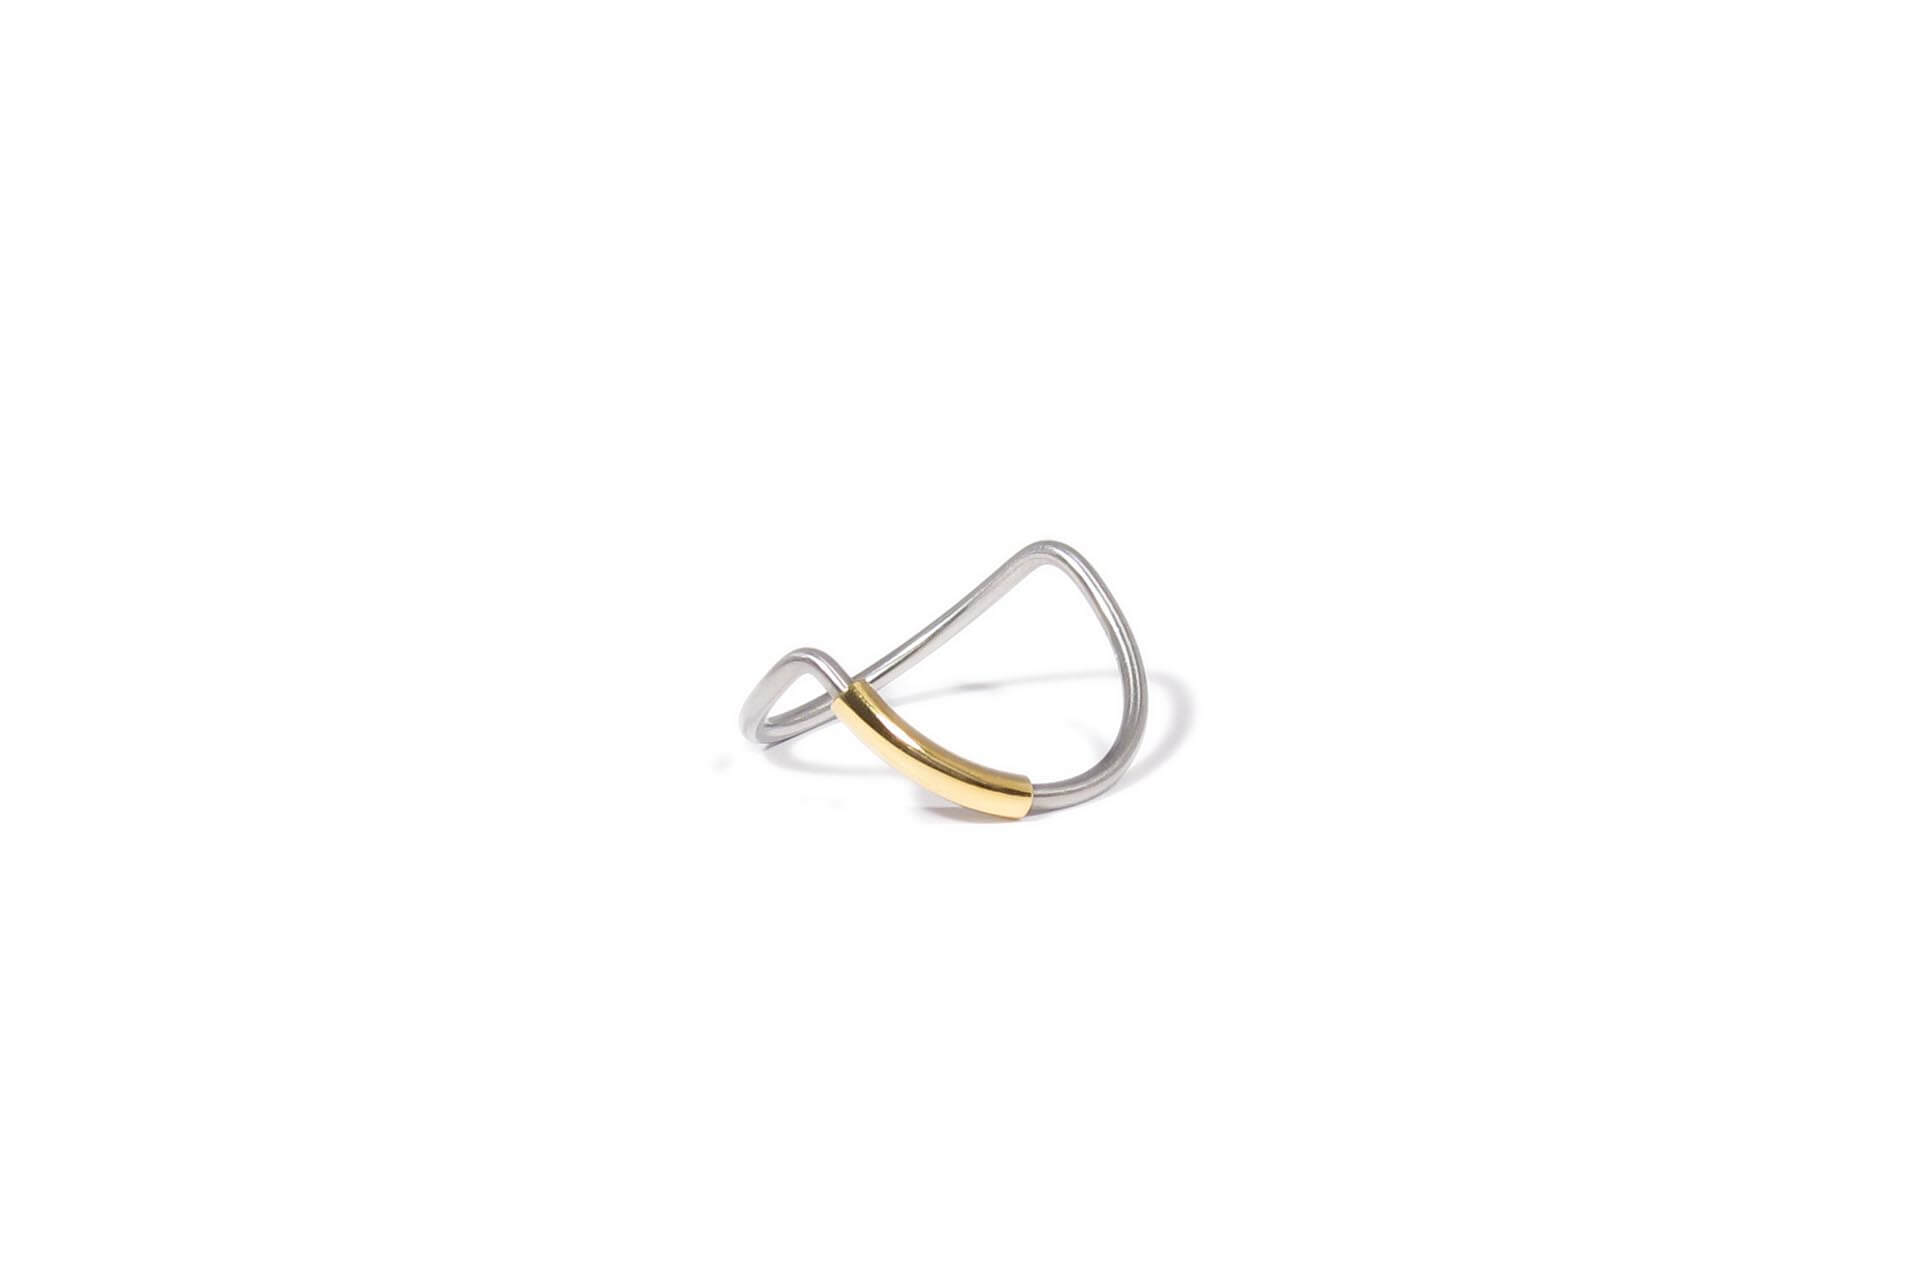 Bram van Huis Stainless steel ring with gold accent